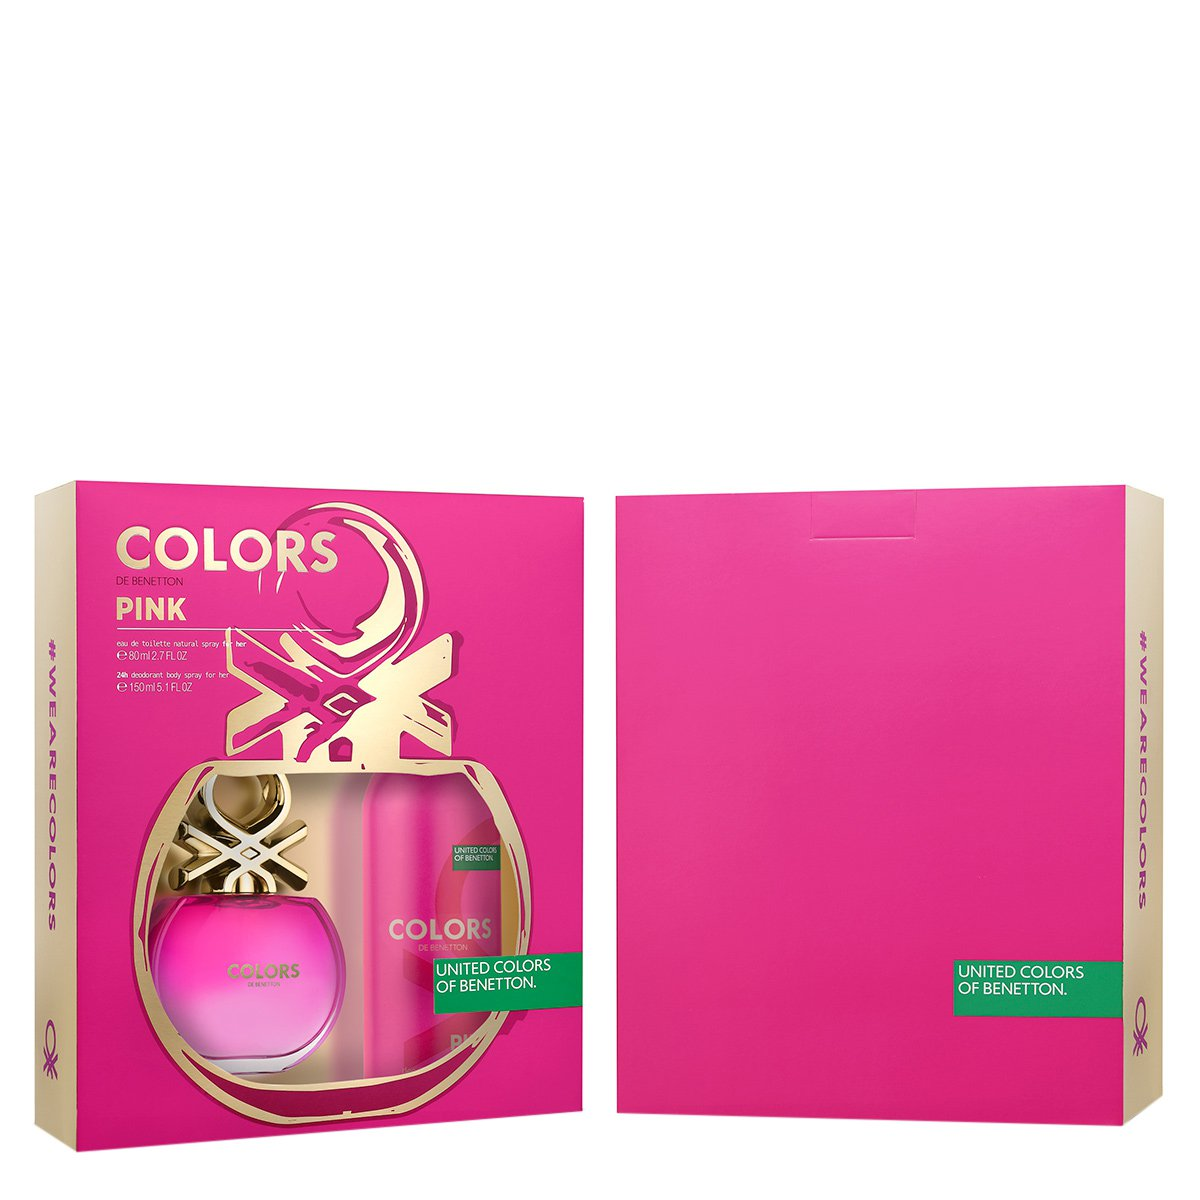 Kit Perfume Feminino Colors Pink Benetton Eau de Toilette 80ml + Desodorante 150 ml